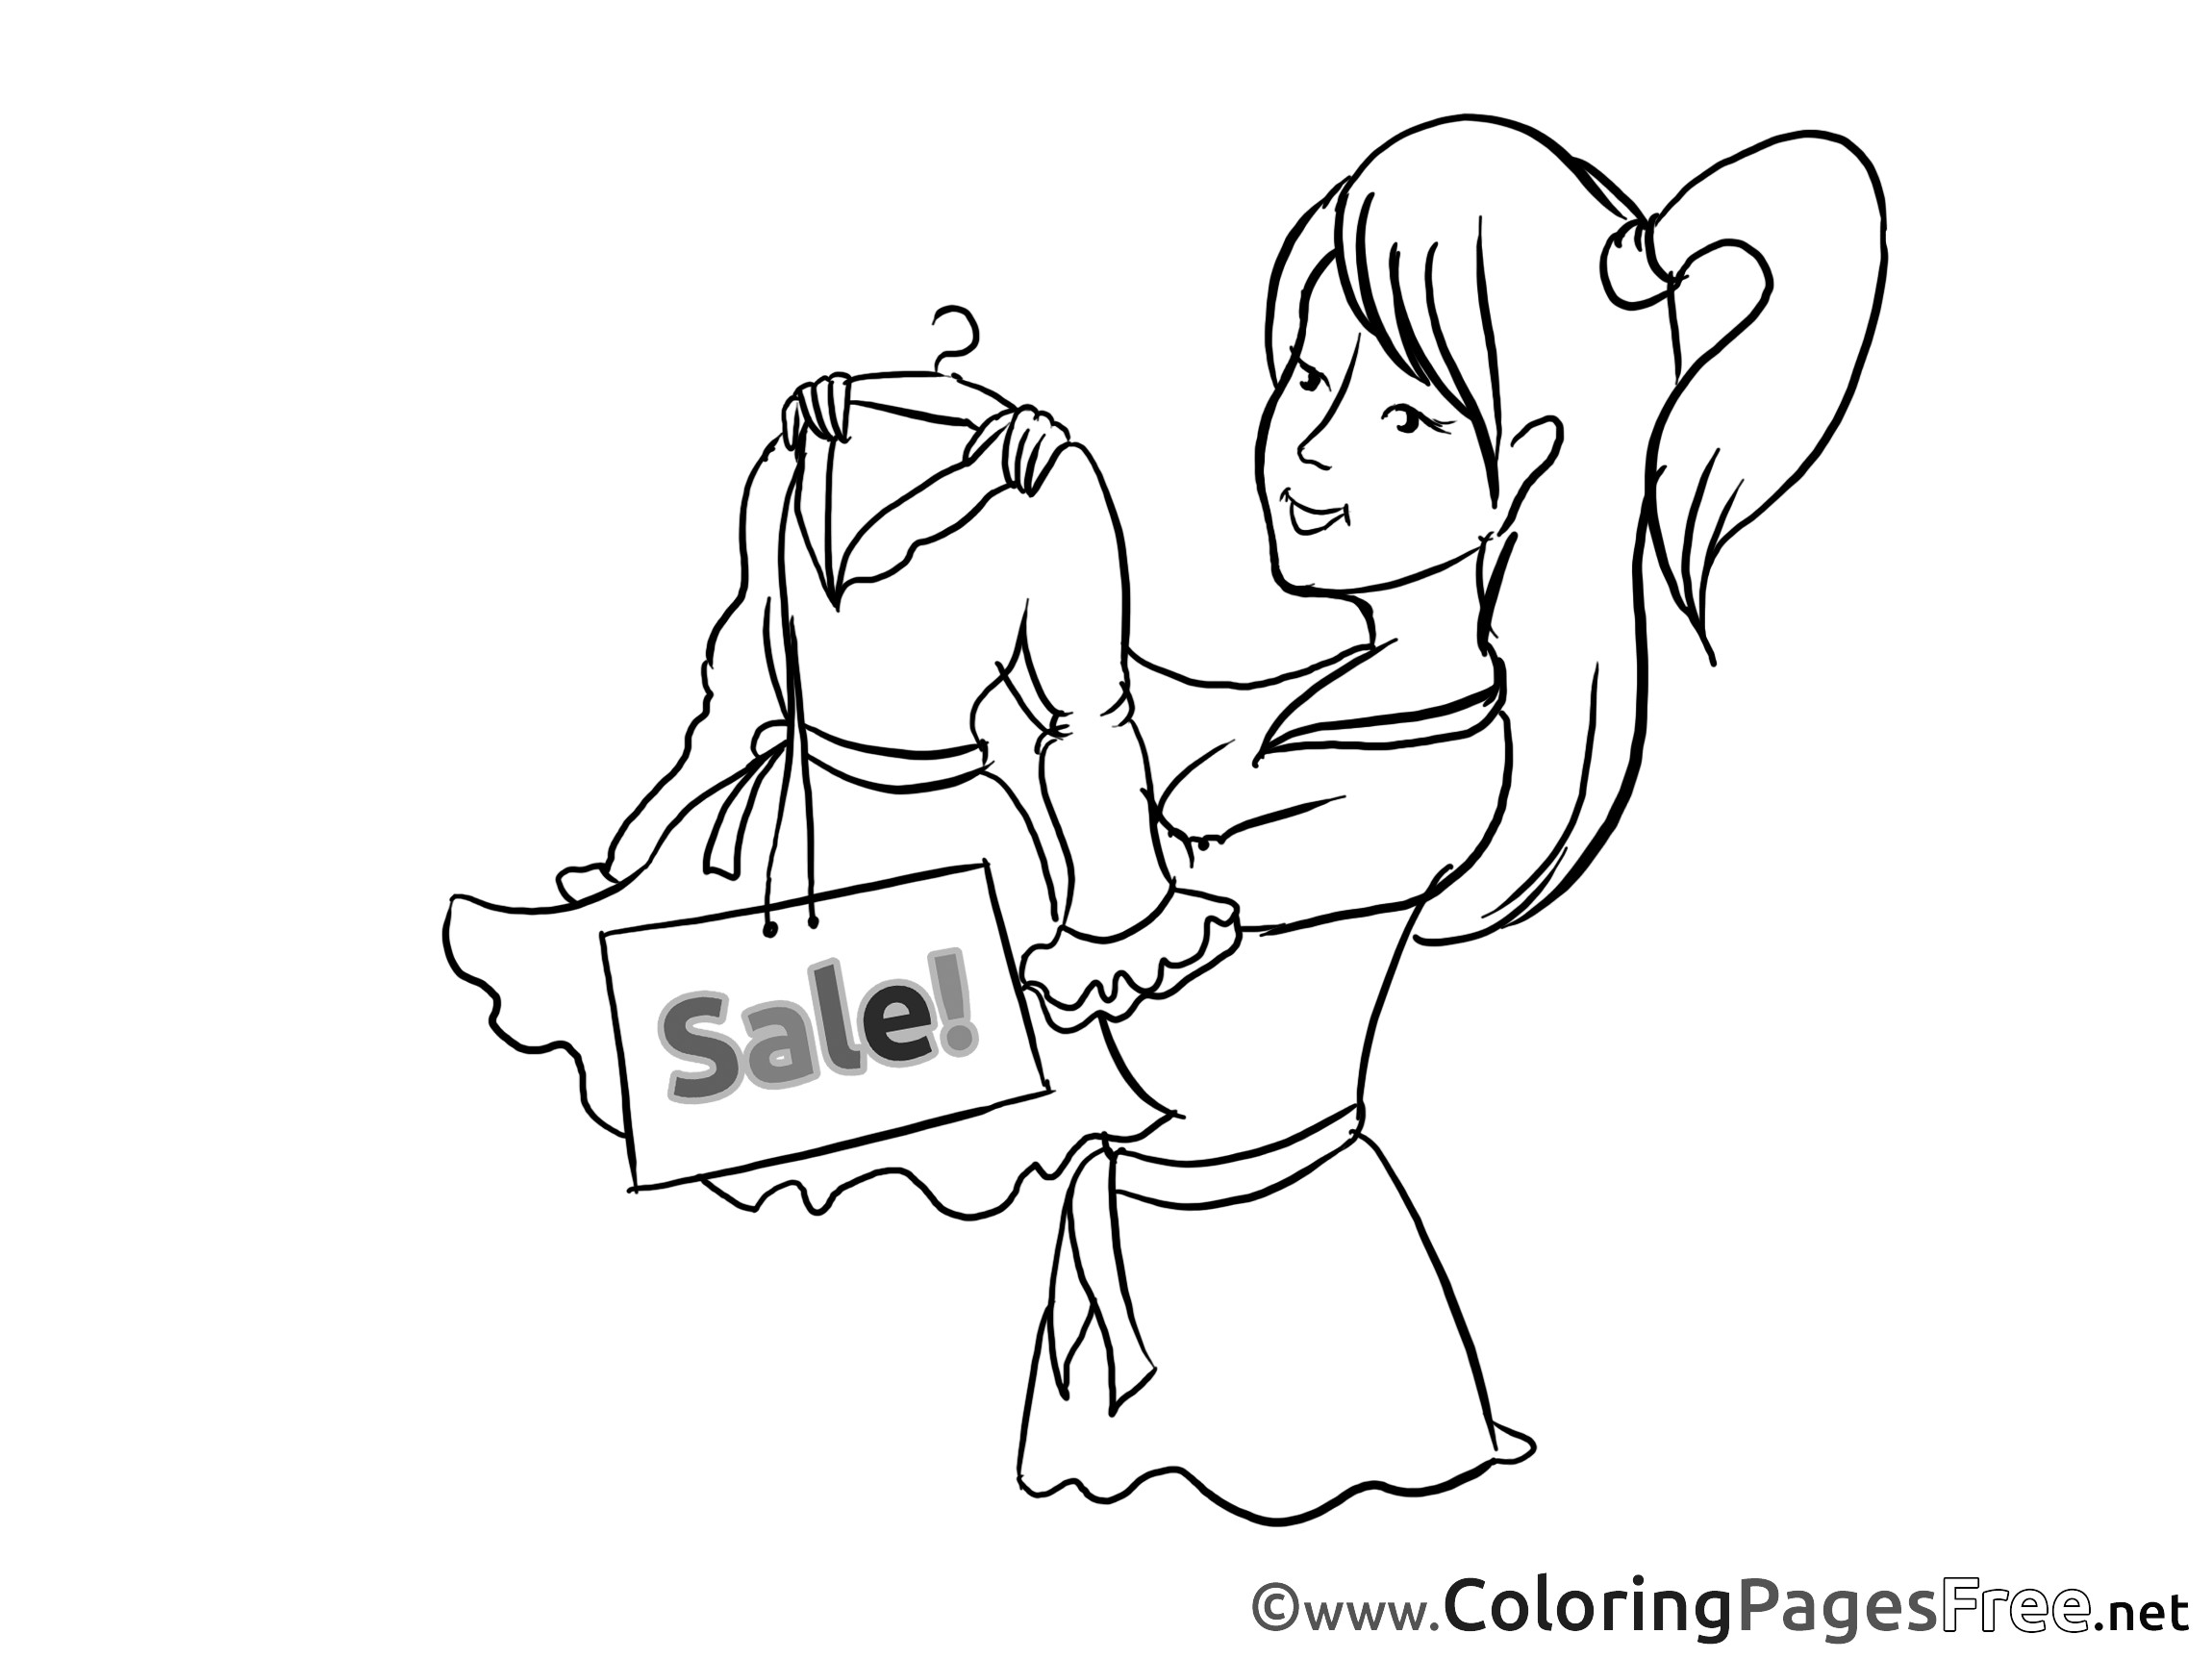 Coloring Book Sales  Dress Sales Kids Business Coloring Pages